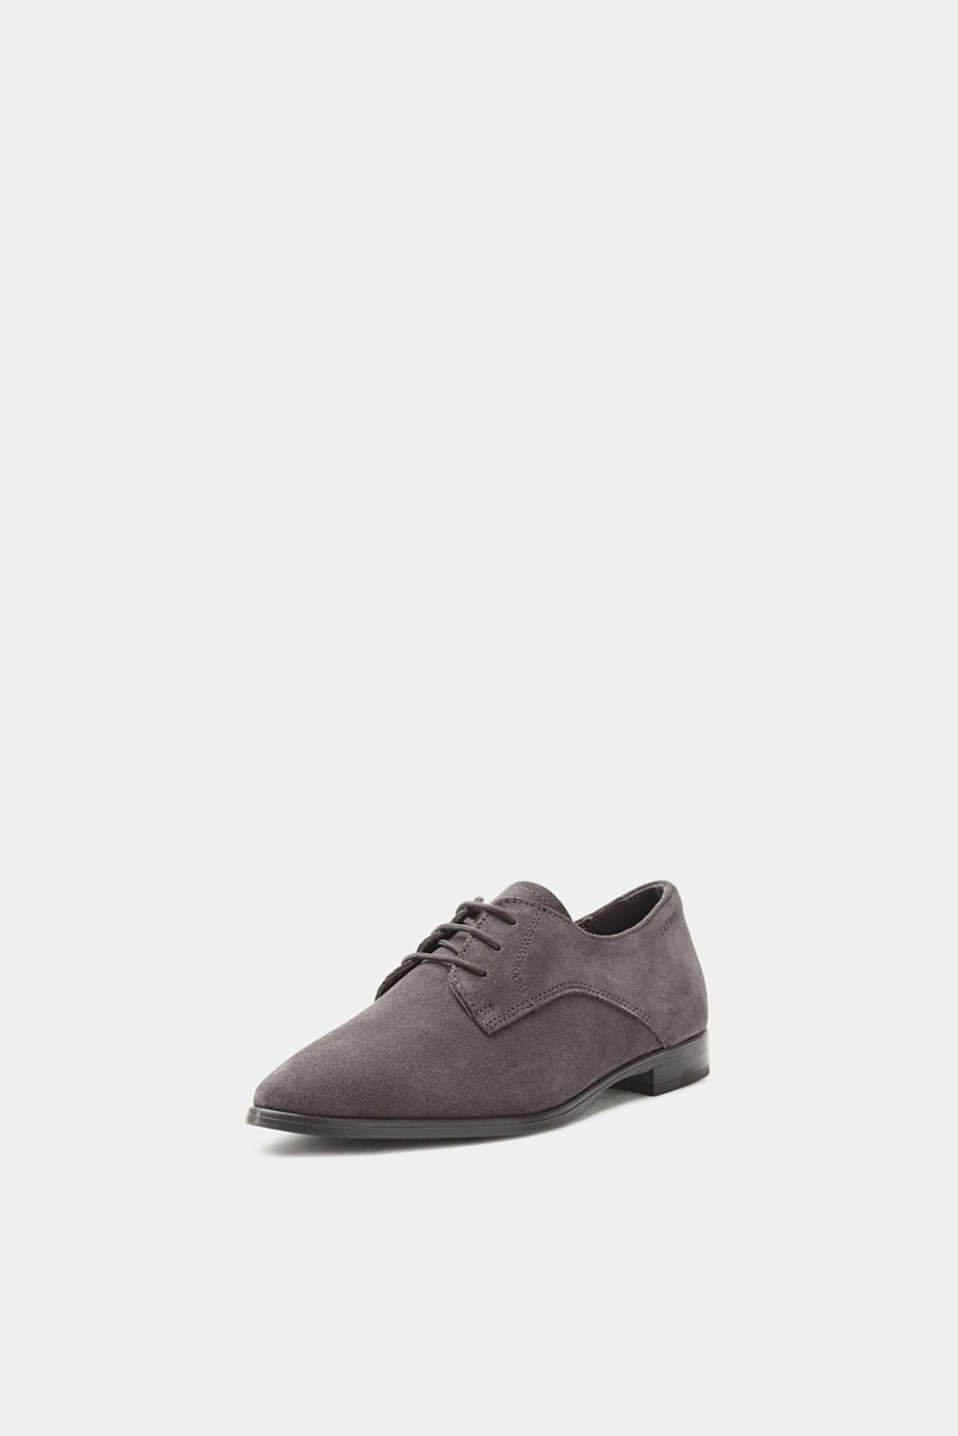 Lace-up shoe made of suede